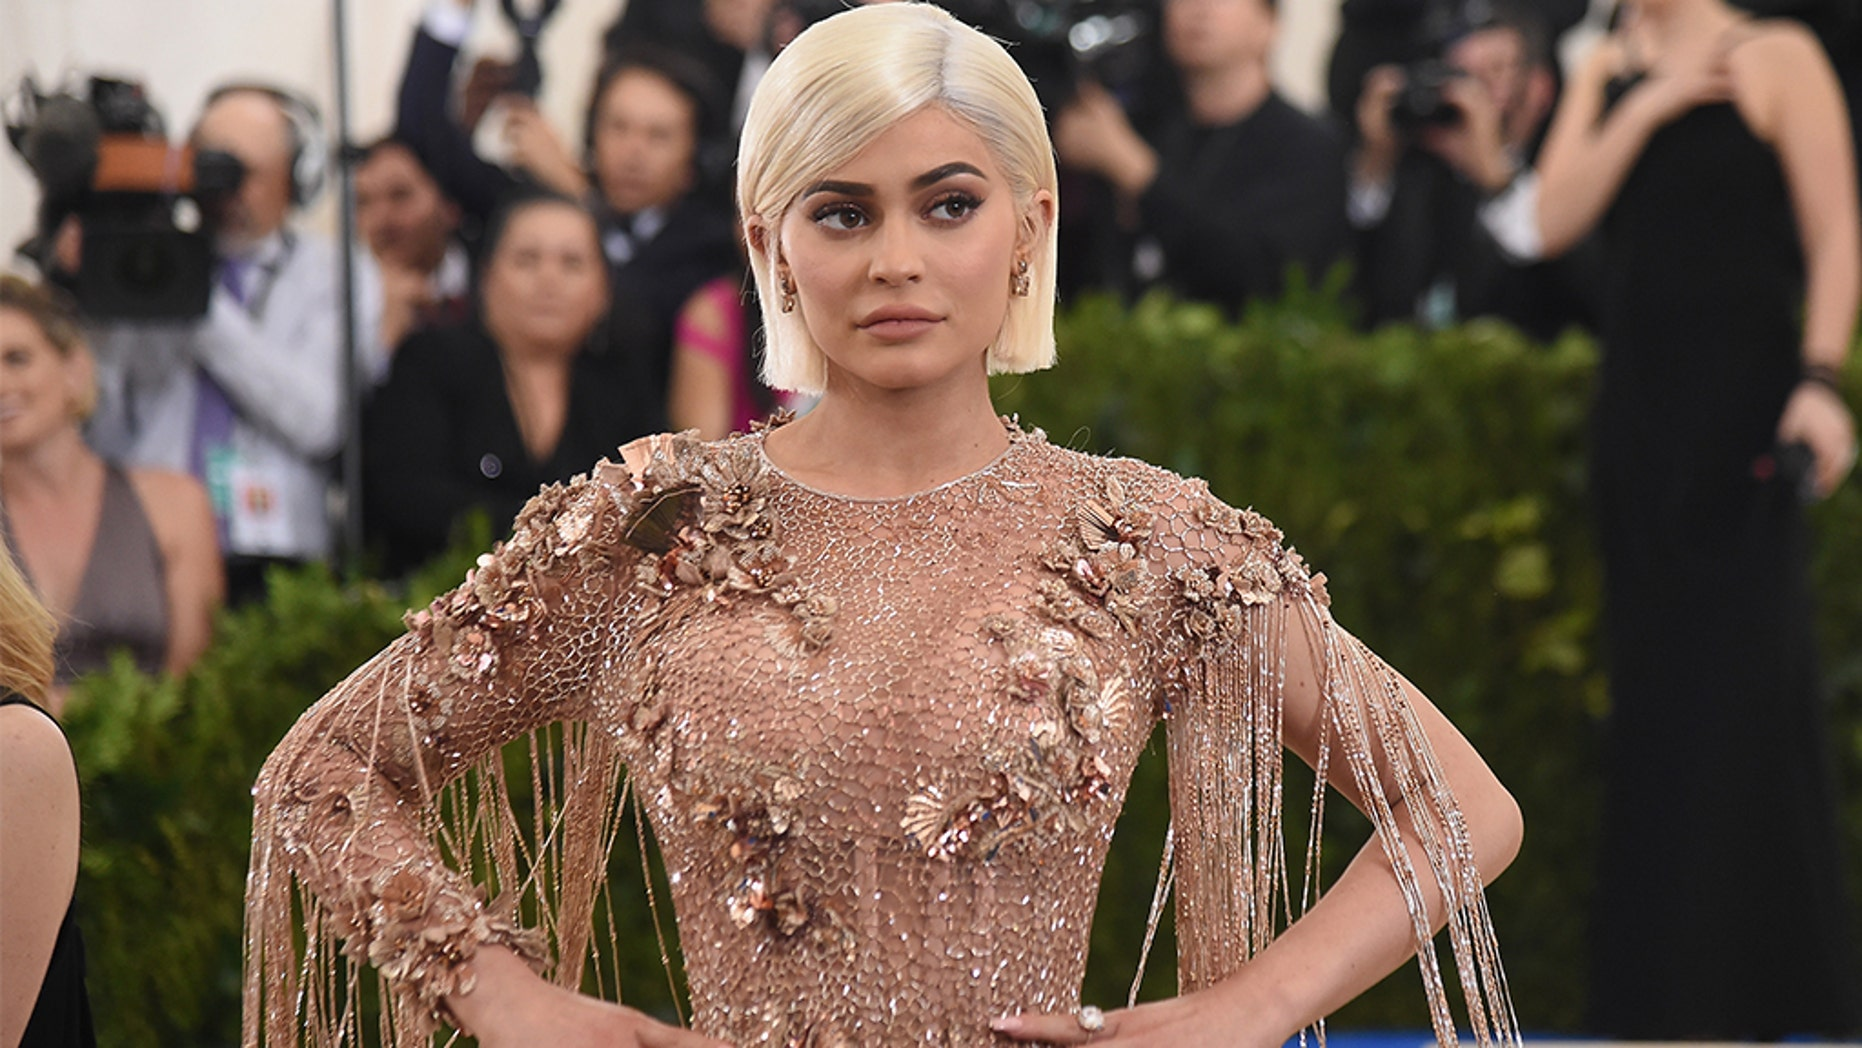 Kylie Jenner Reveals the Name She Almost Gave Stormi Webster